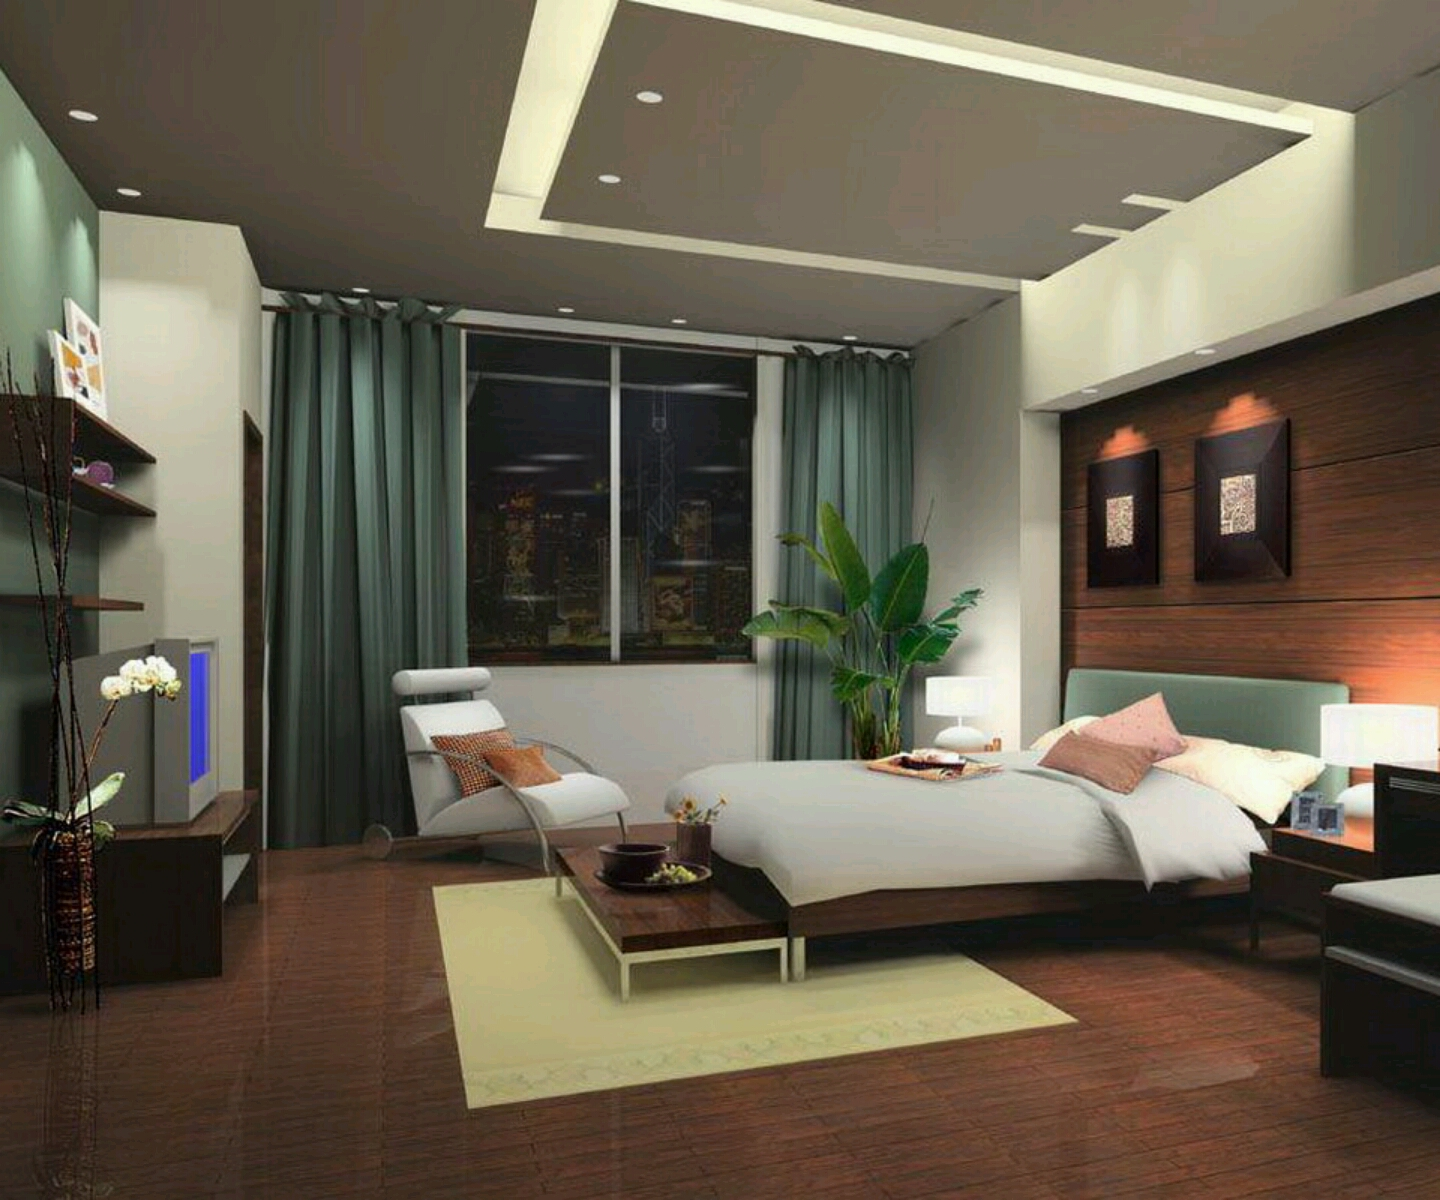 New home designs latest modern bedrooms designs best ideas for Latest bedroom styles